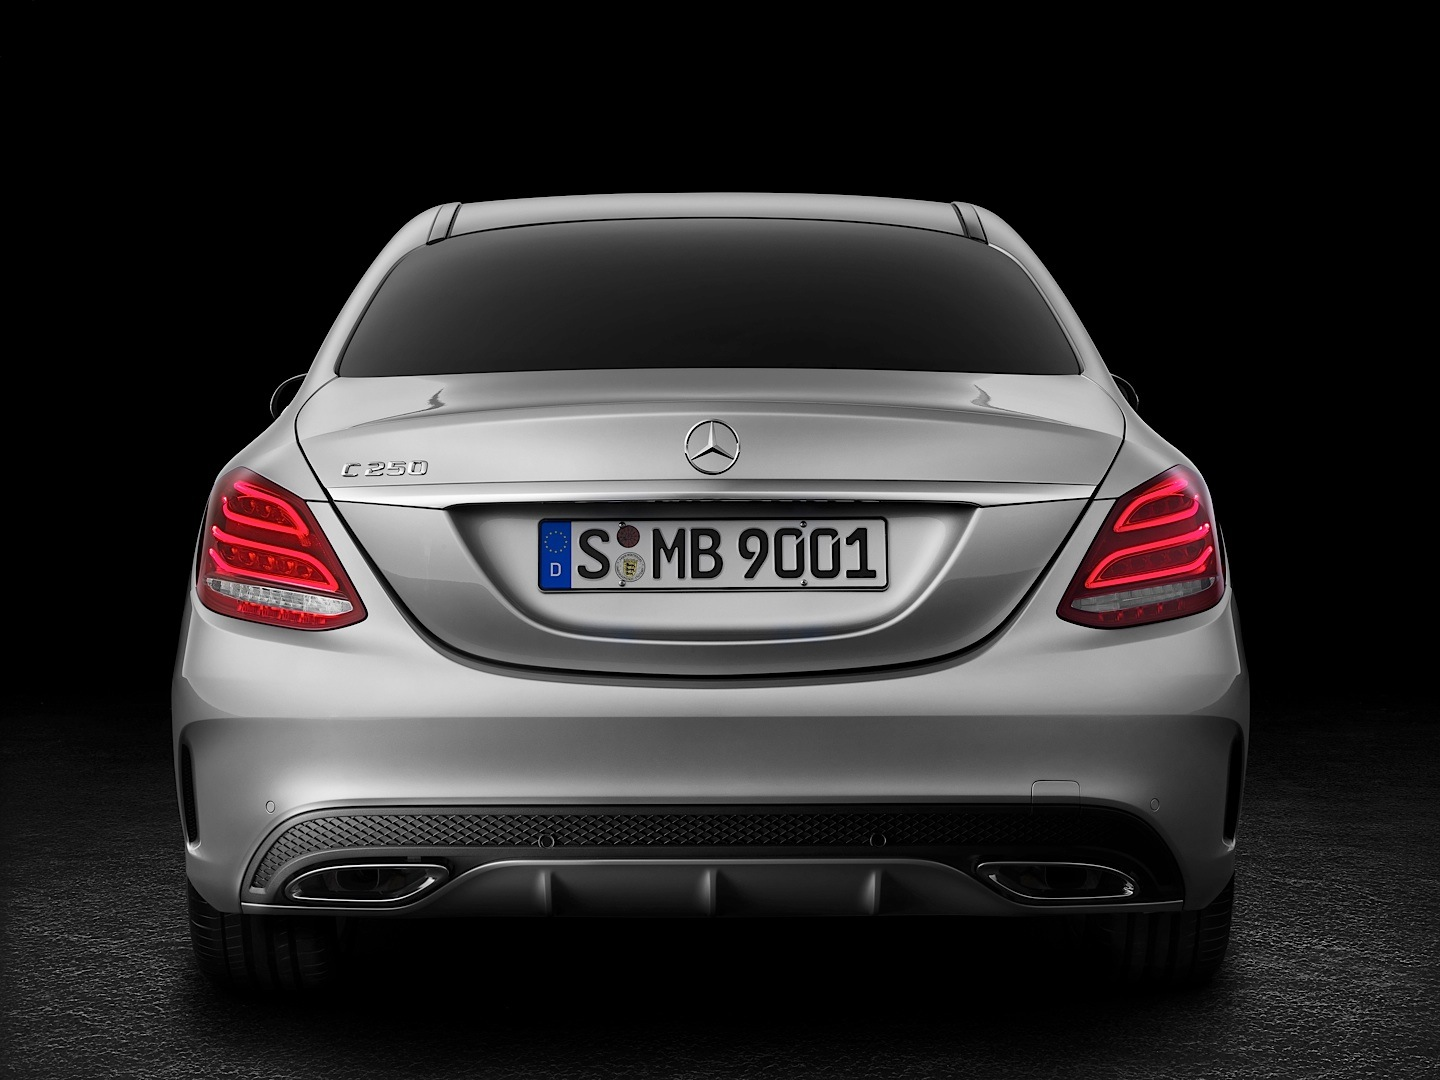 check-out-the-first-official-footage-with-the-new-c-class-w205-video-1080p-19